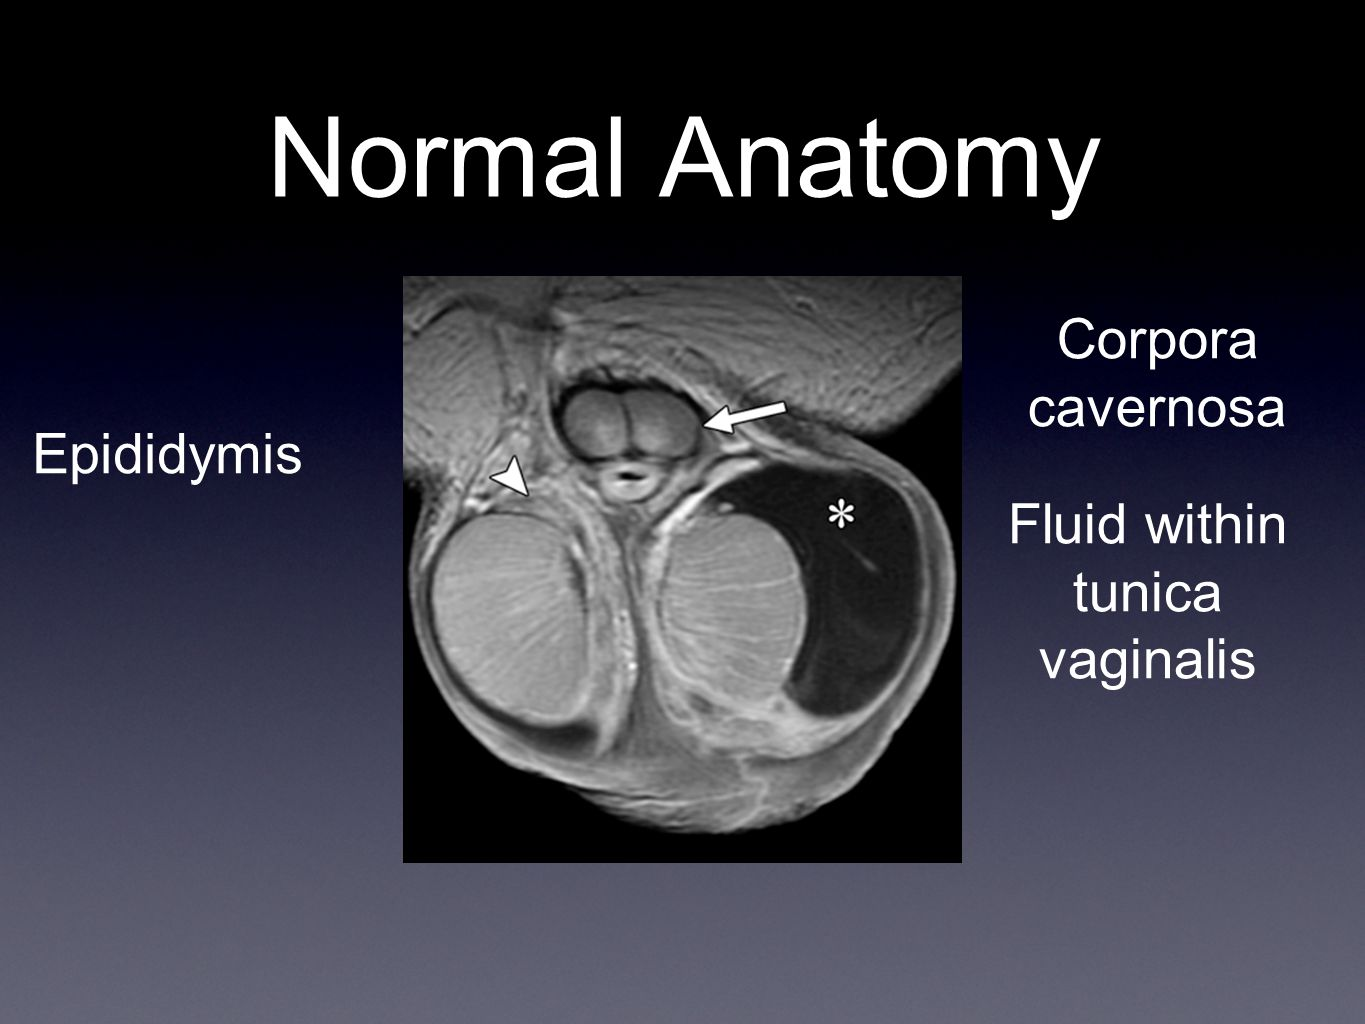 Fluid within tunica vaginalis